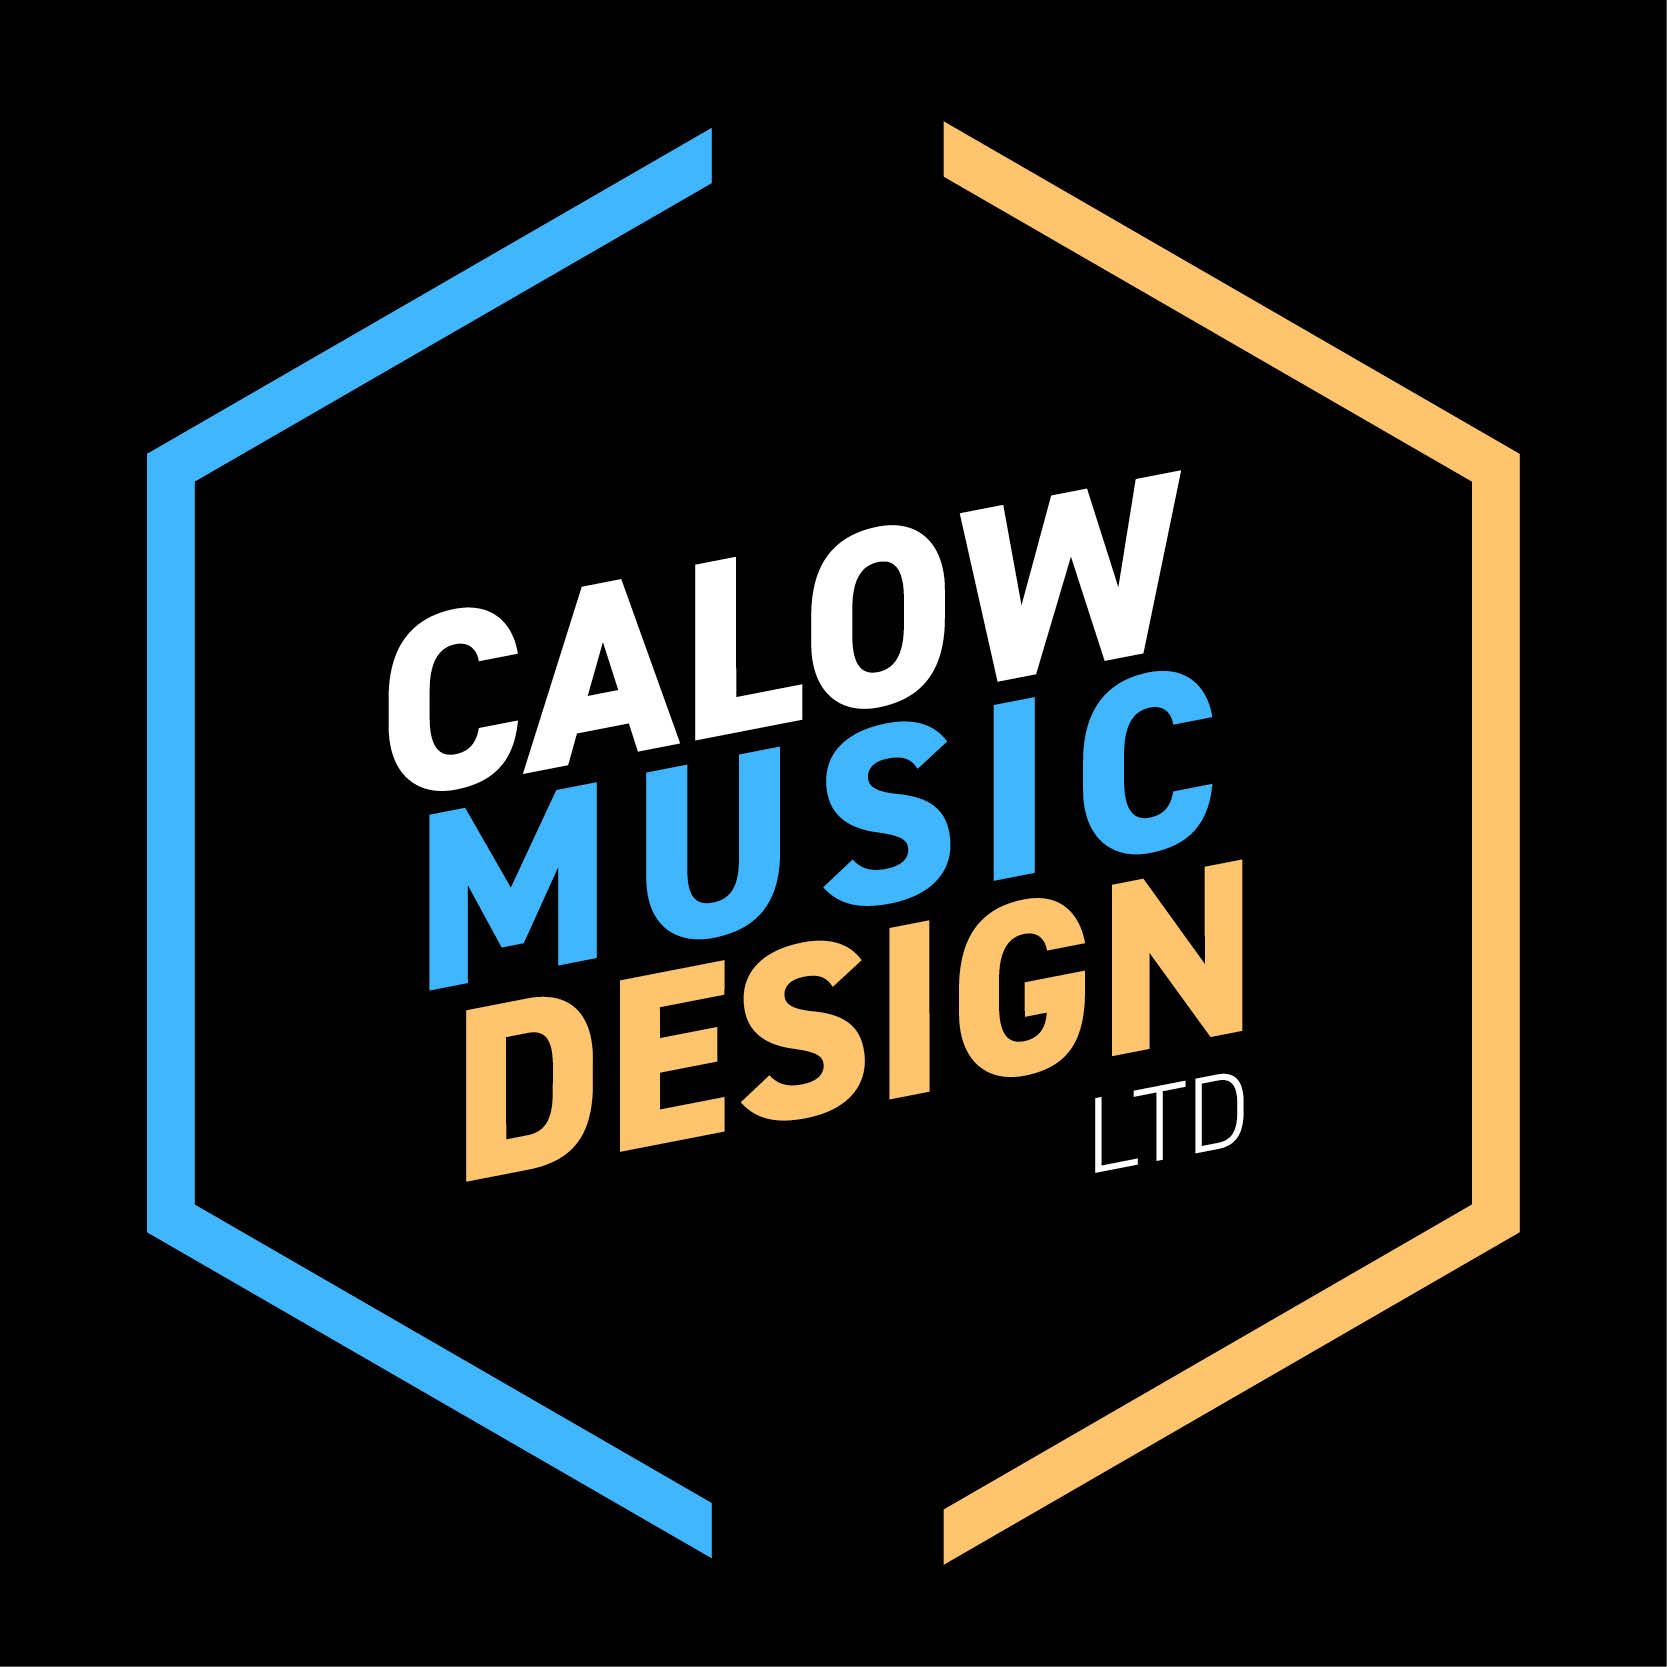 Calow Music Design